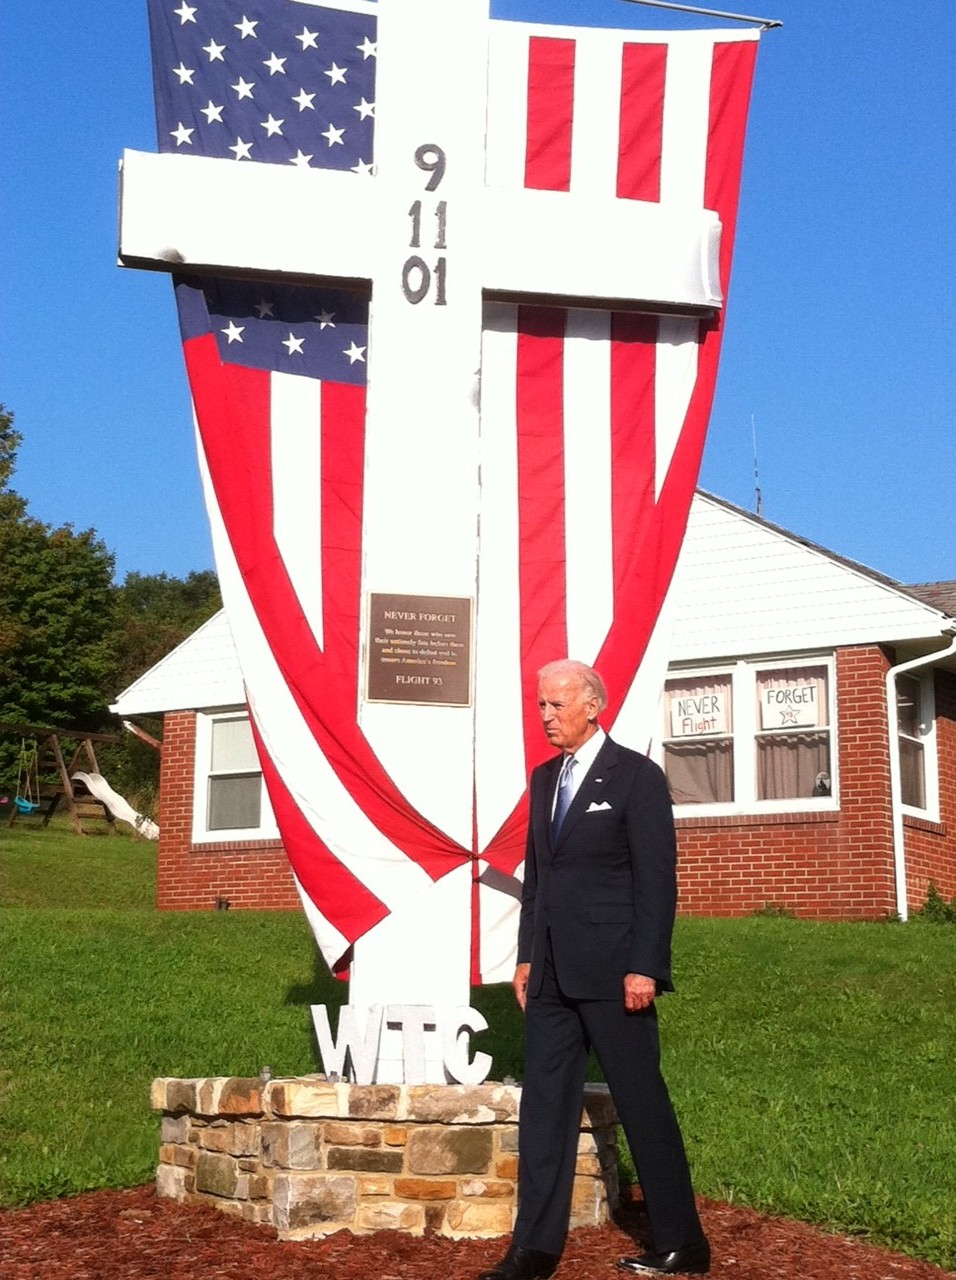 Twitter / VP: PHOTO: VP in front of a cross ...